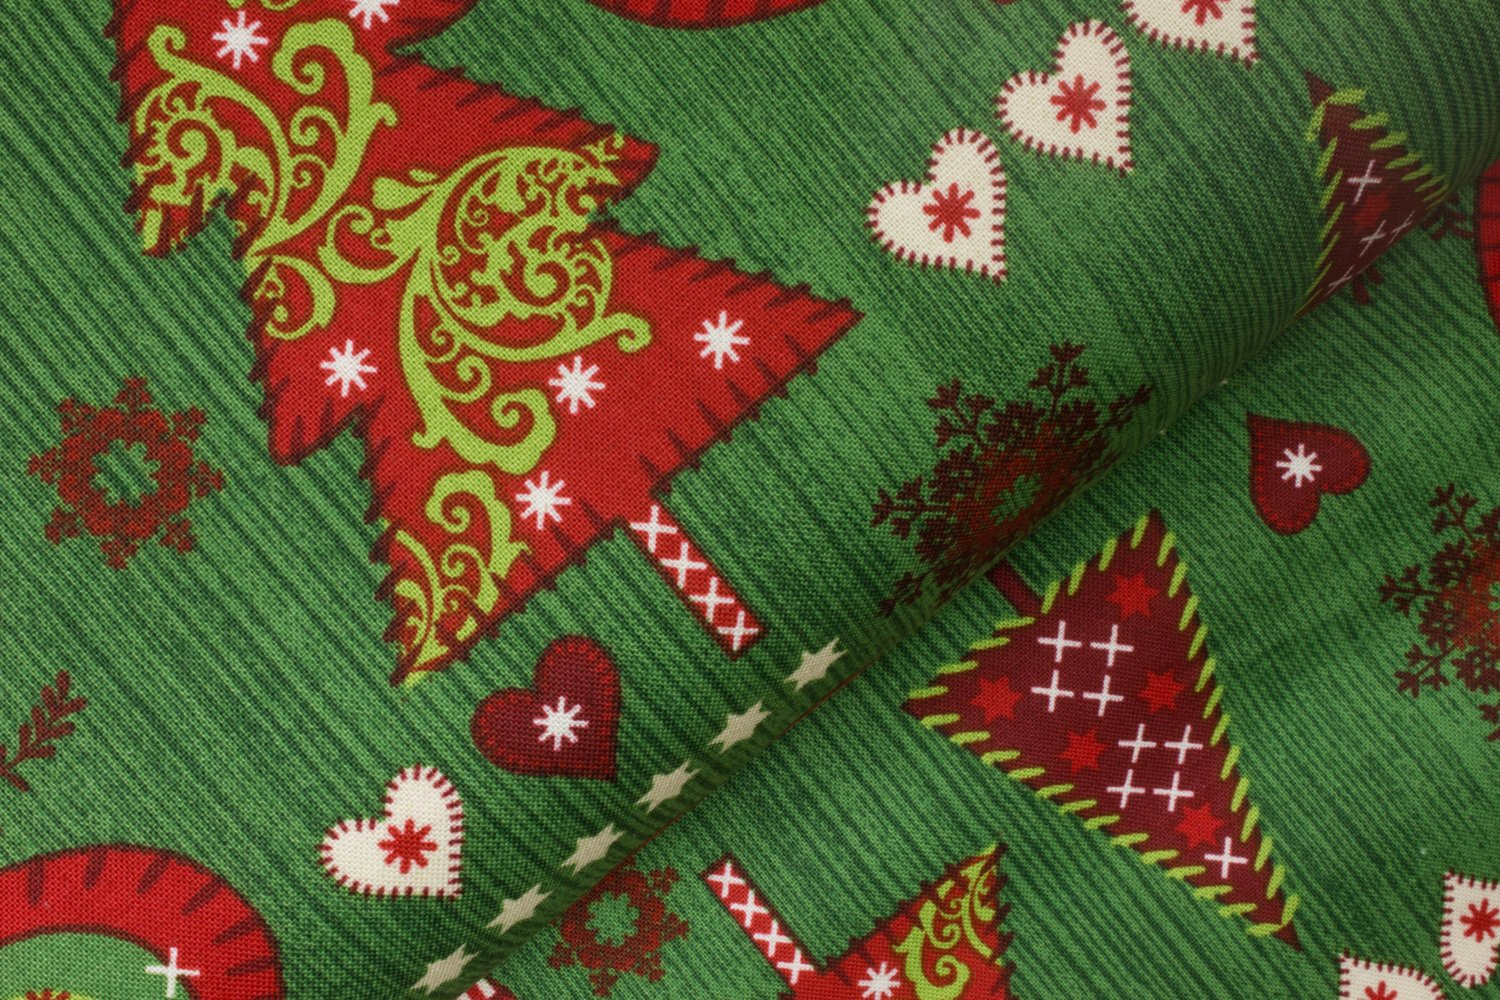 Stitched Christmas Trees, Hearts, and Ornaments on Green by R.E.D. International Textiles - Fabricland